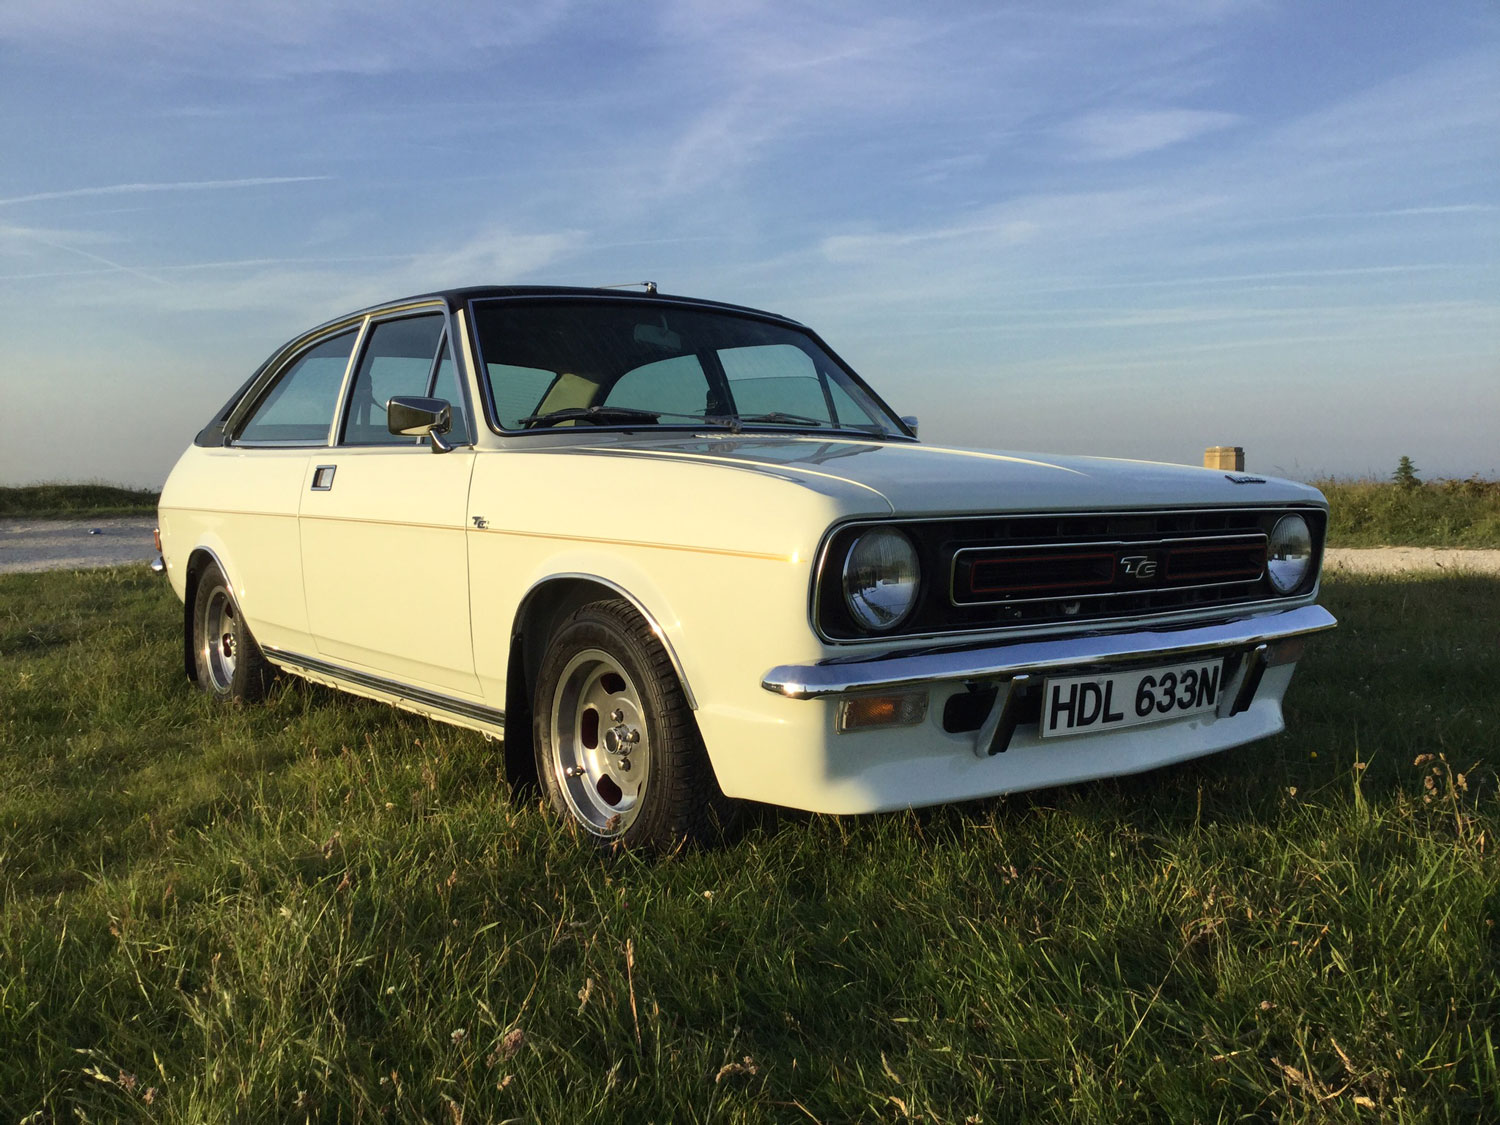 Hagerty UK's Festival of the Unexceptional Contestant